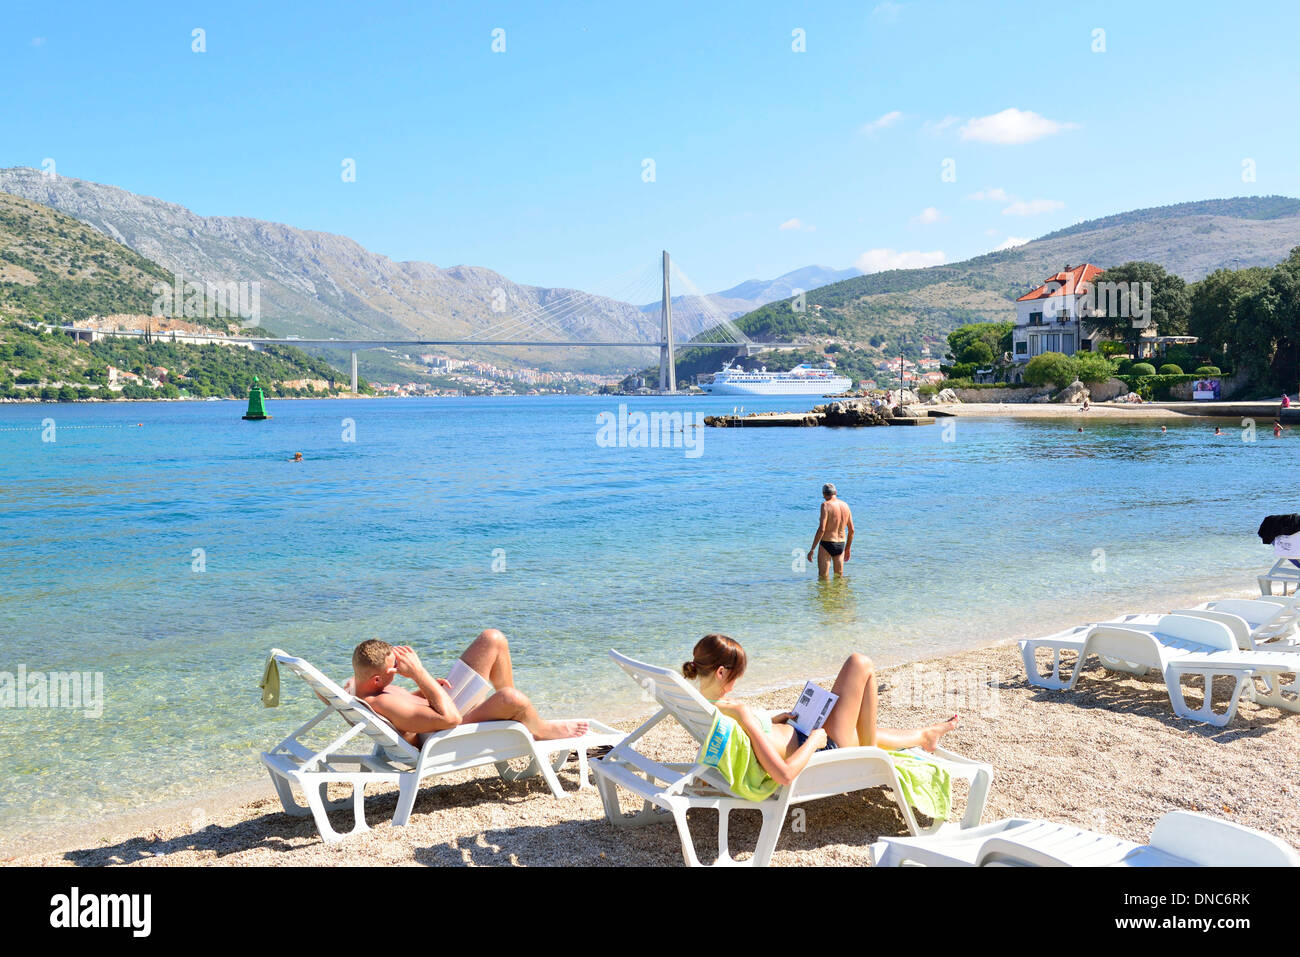 Sunbathers on Copacabana Beach, Dubrovnik and behind the Franjo Tuđman Bridge - cable-stayed bridge carrying the D8 state road - Stock Image